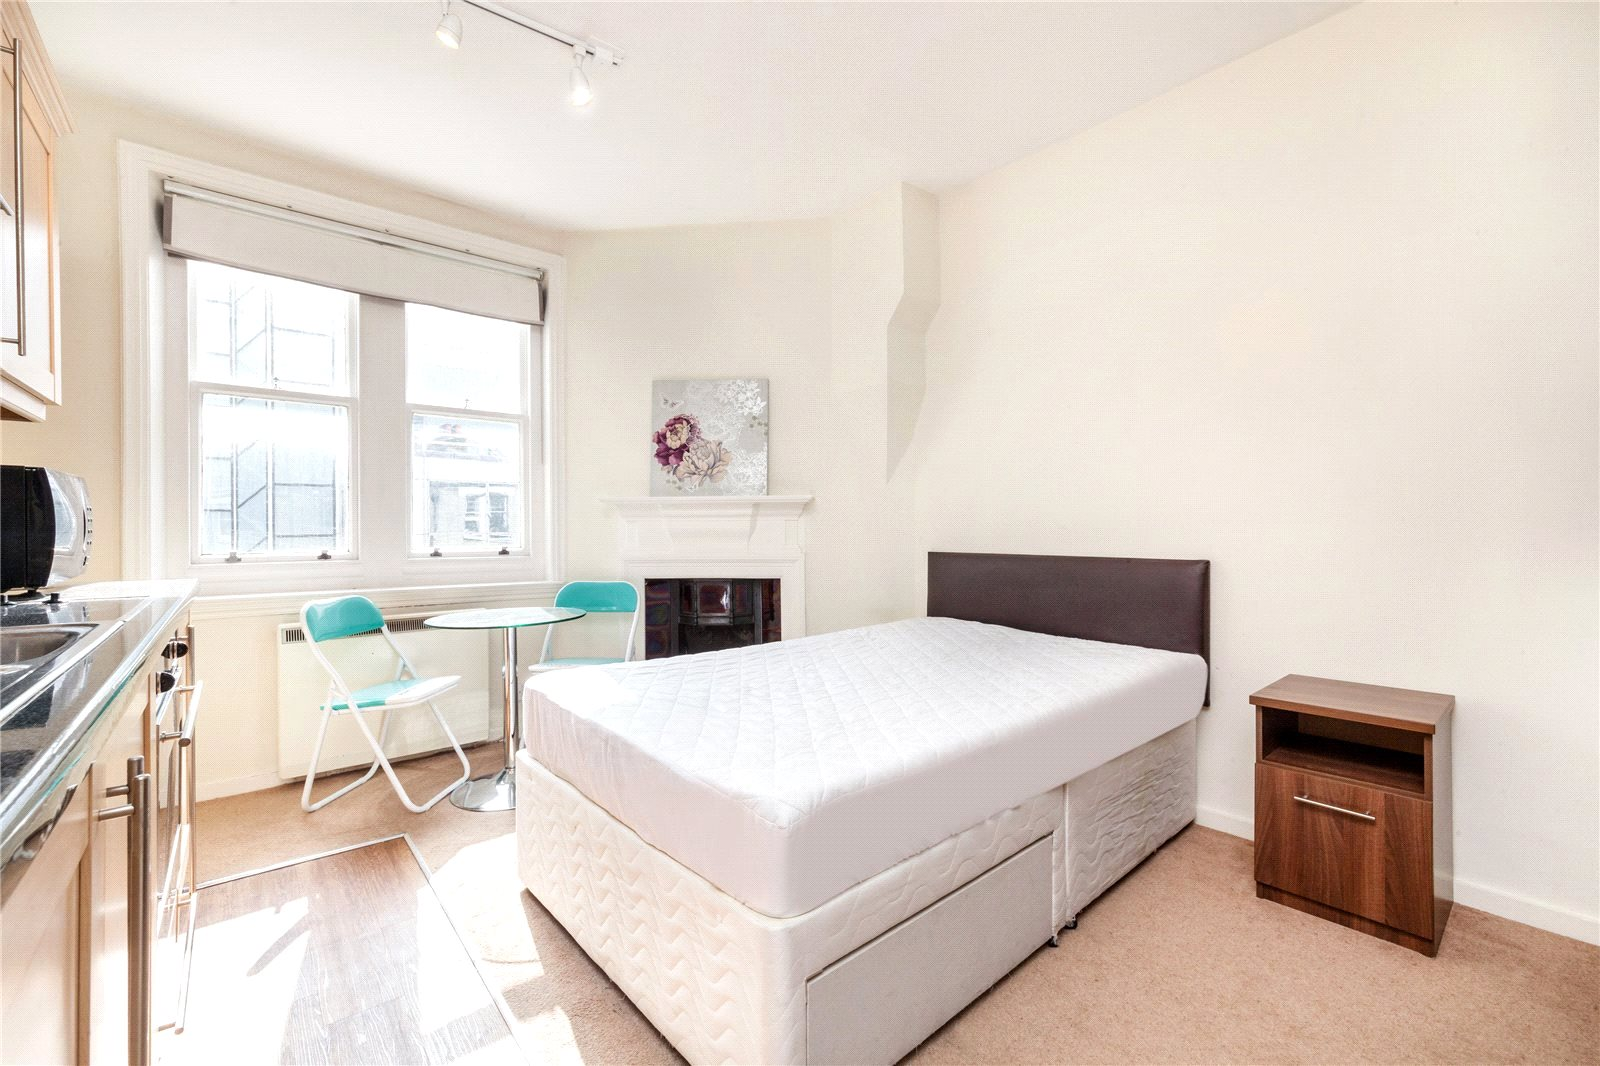 Burleigh Mansions, 20 Charing Cross Road, WC2H